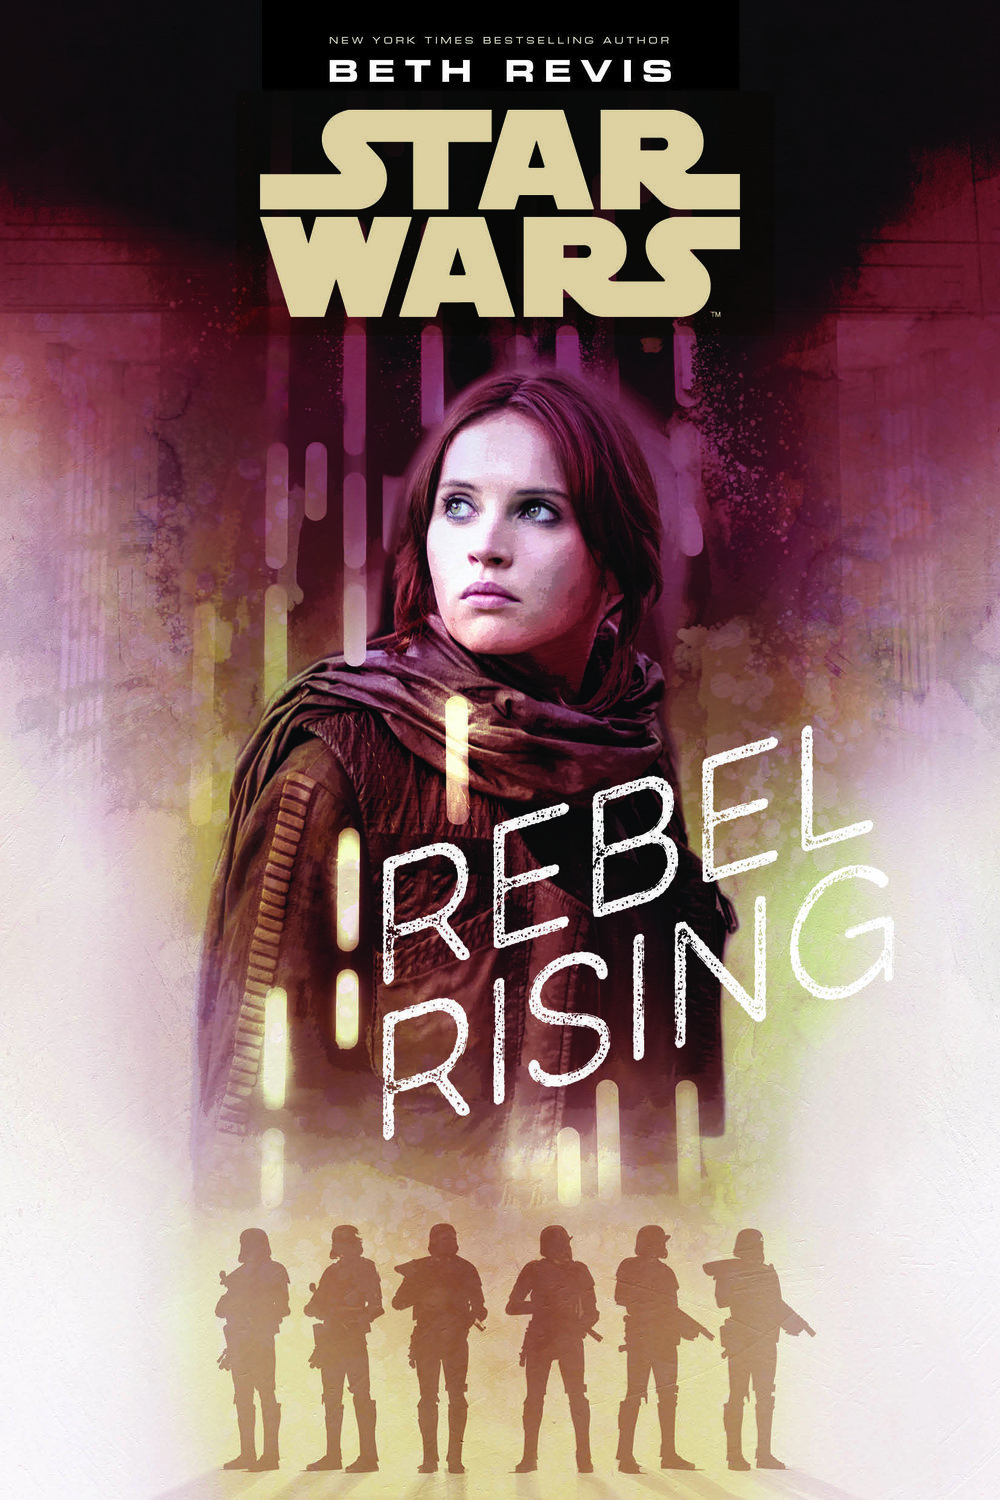 Rebel_Rising_cover.jpg